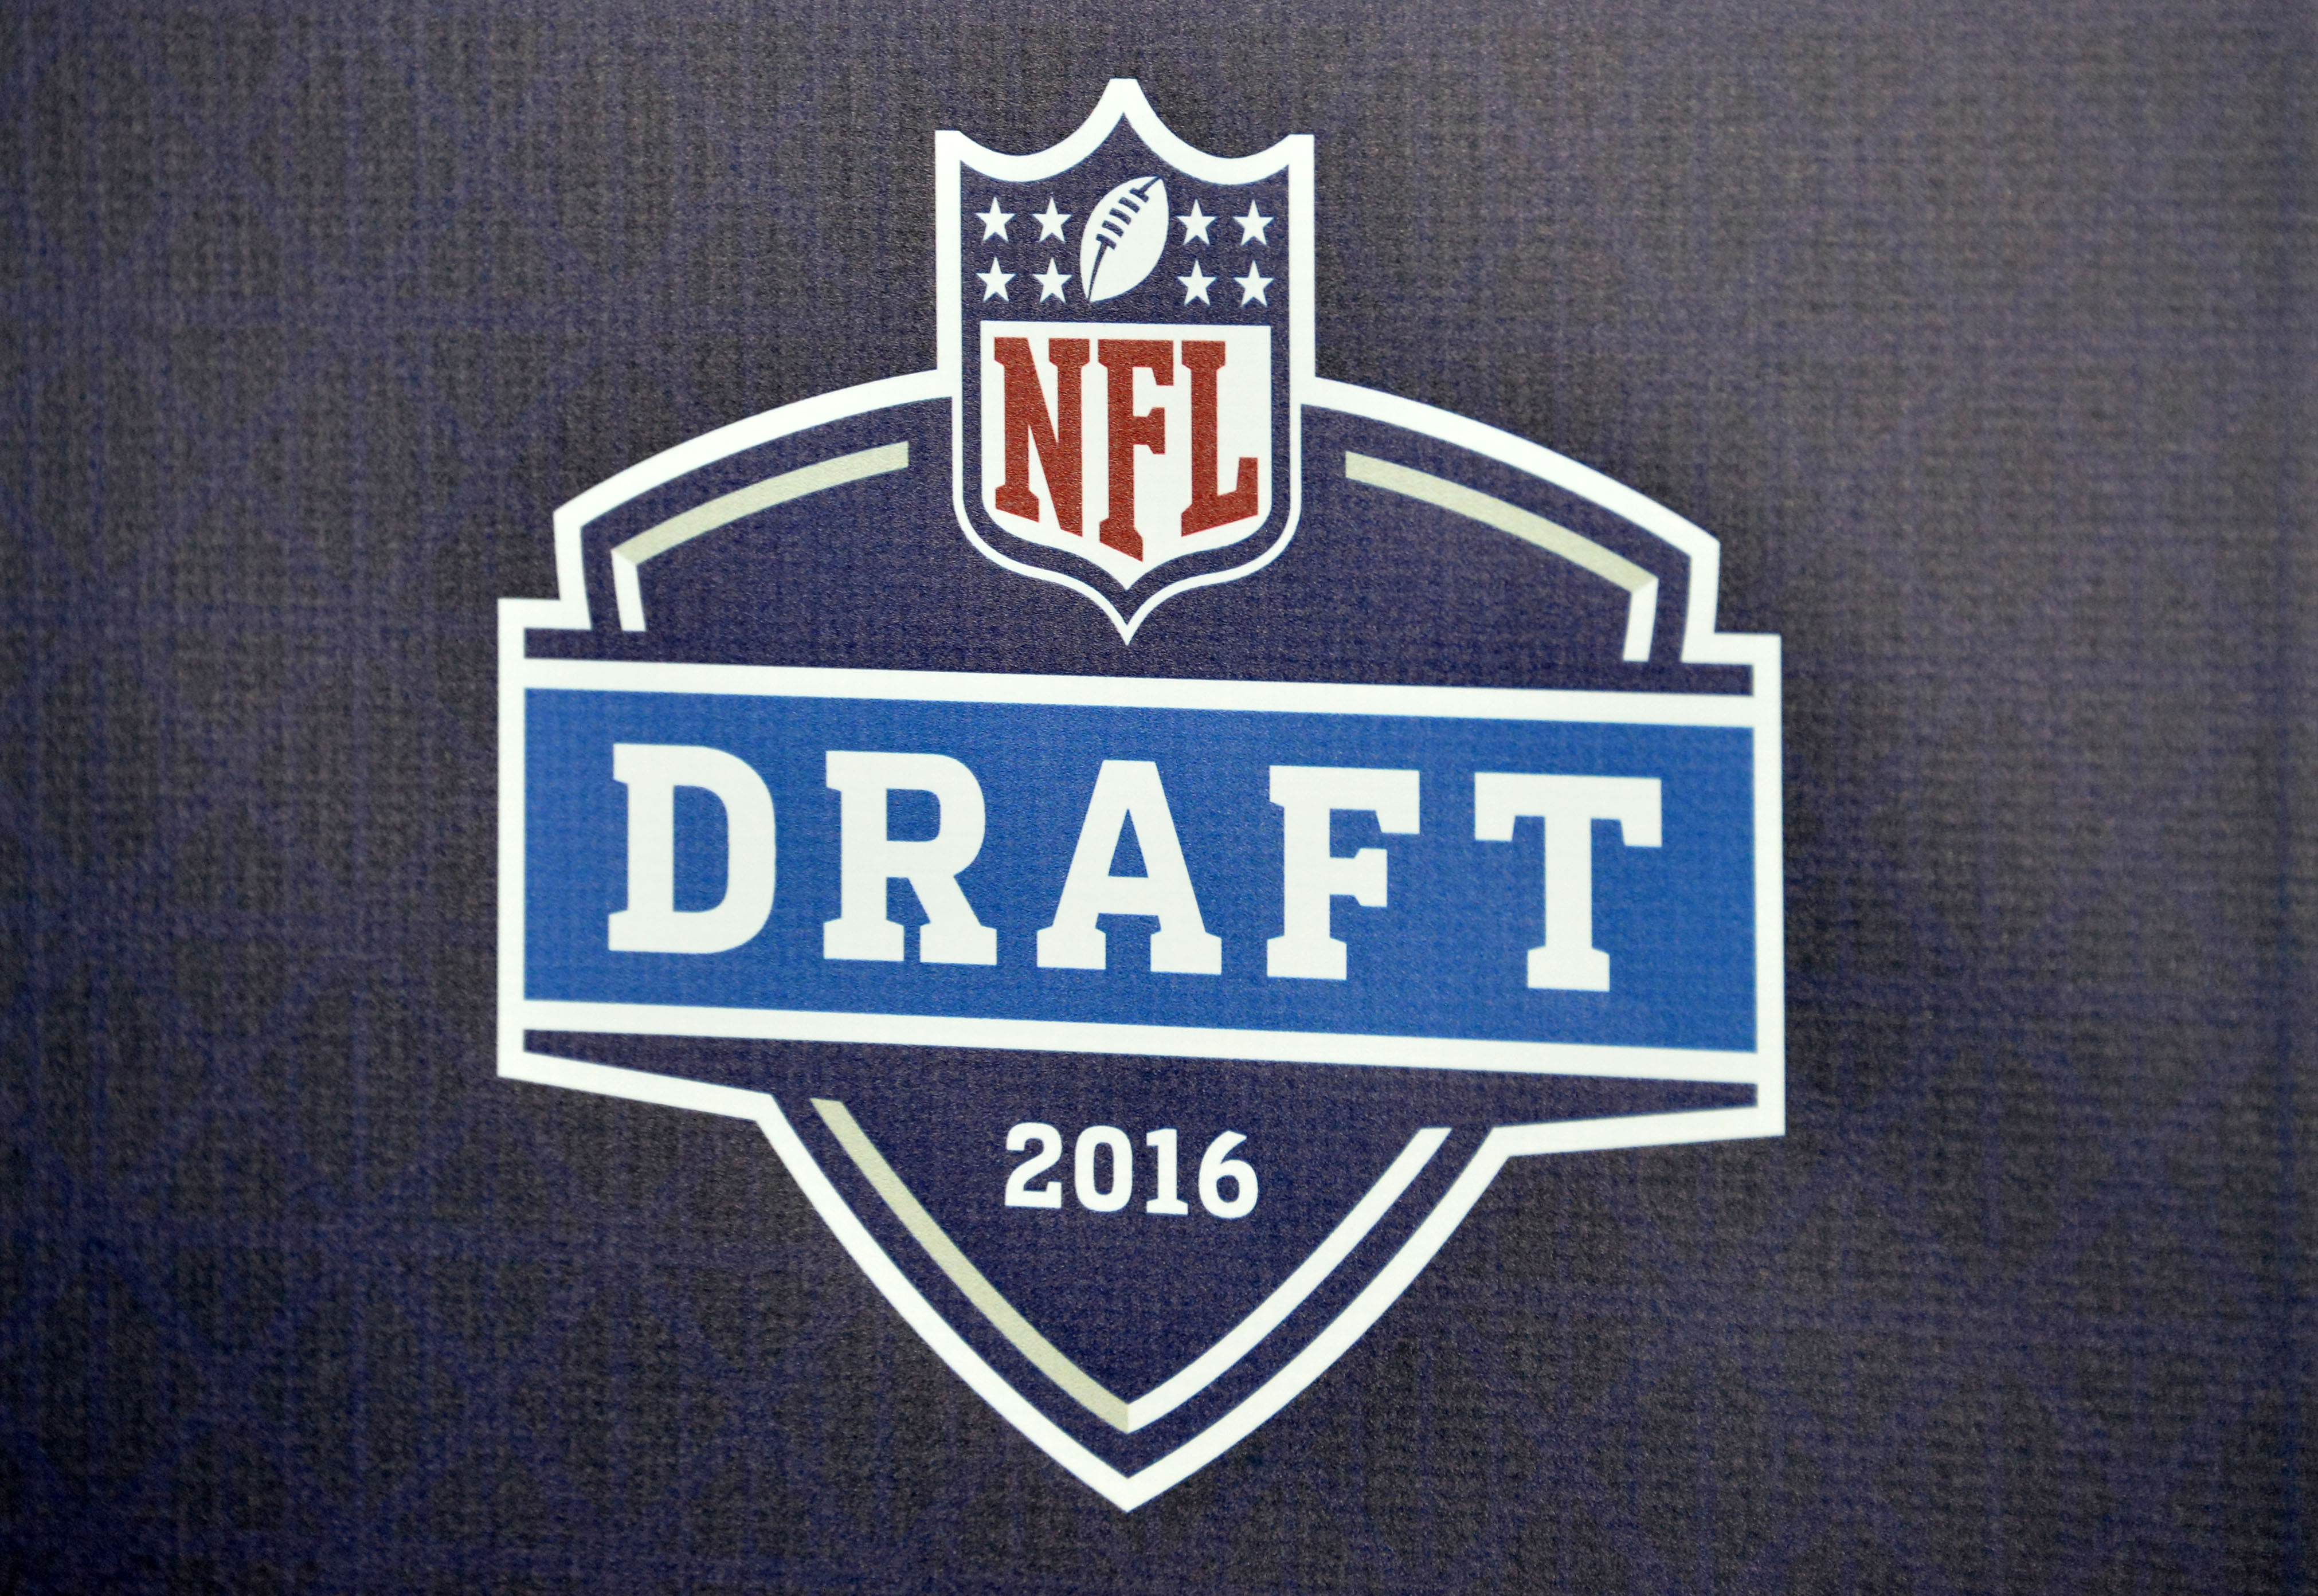 9273473-nfl-los-angeles-rams-draft-party